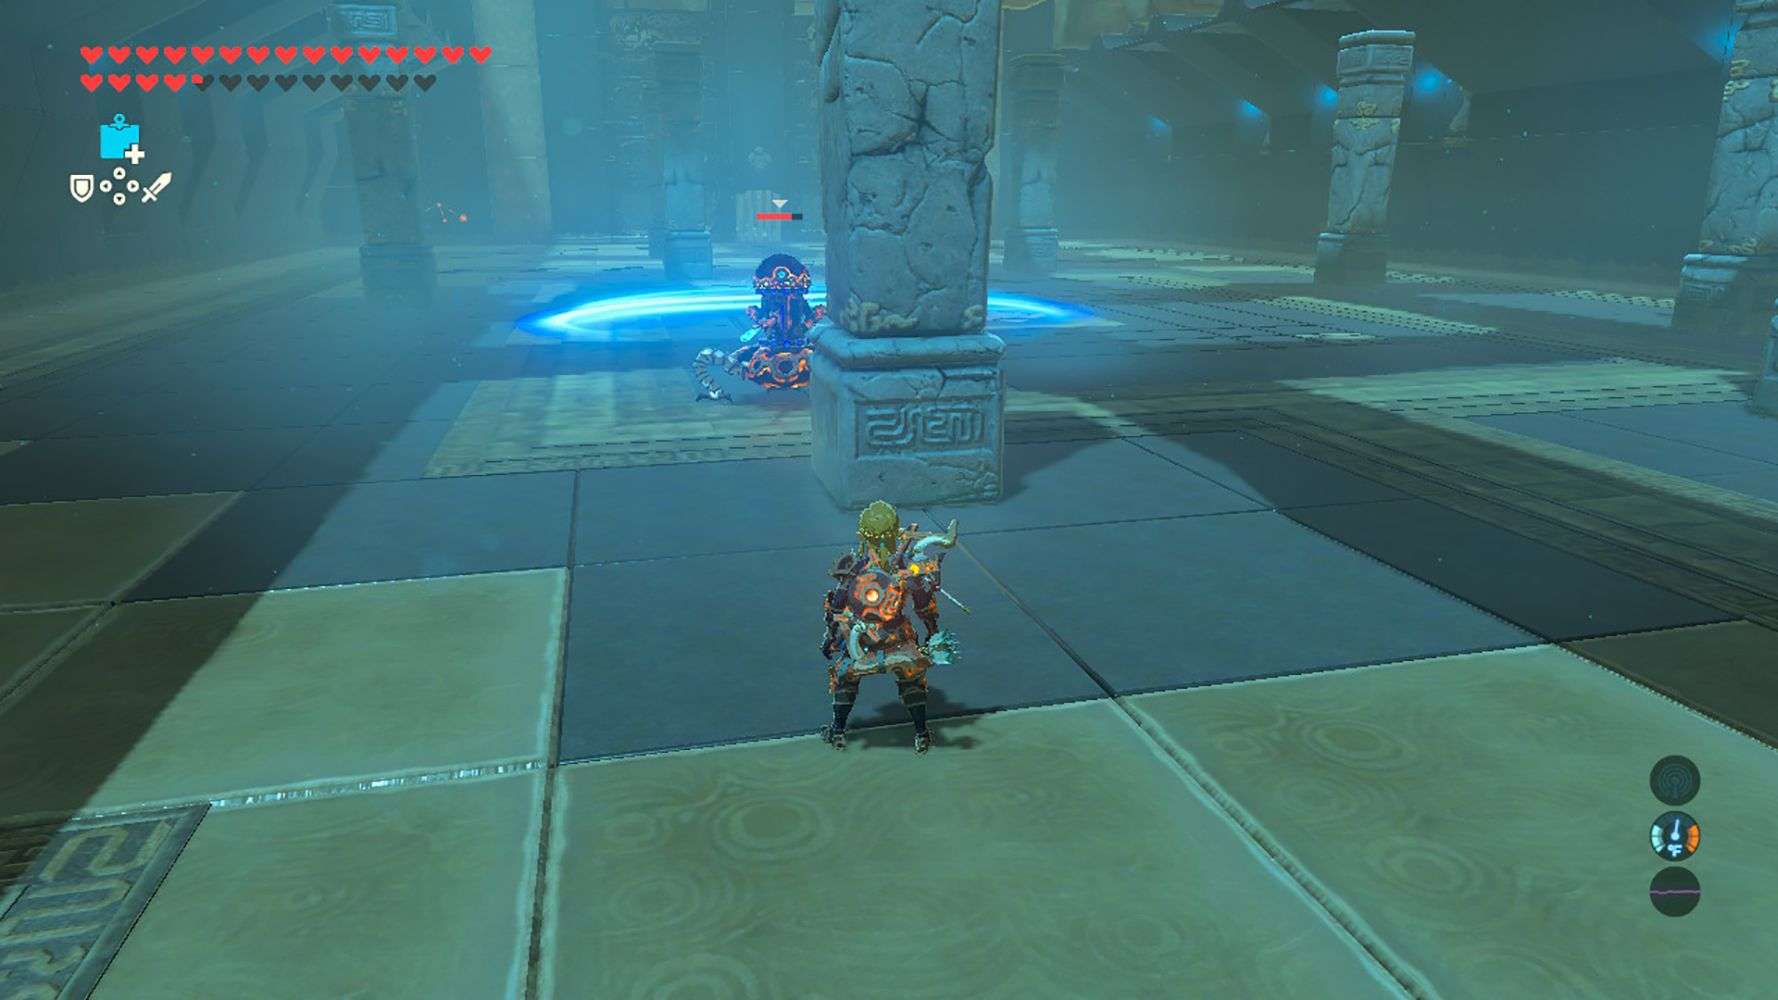 Screenshot of hiding from a Guardian in Breath of the Wild